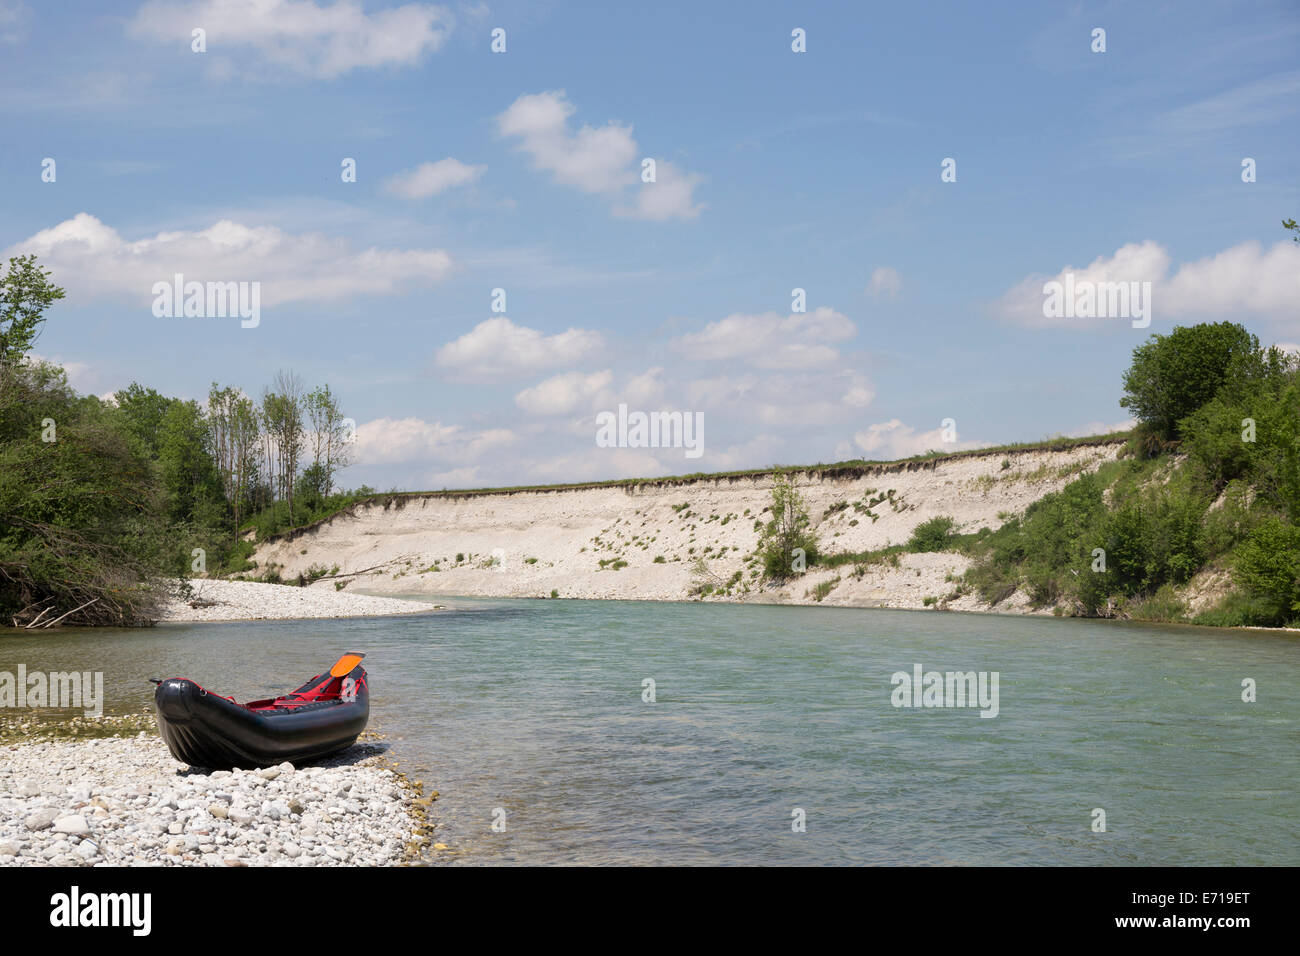 Rafting Isar Stockfotos & Rafting Isar Bilder - Alamy